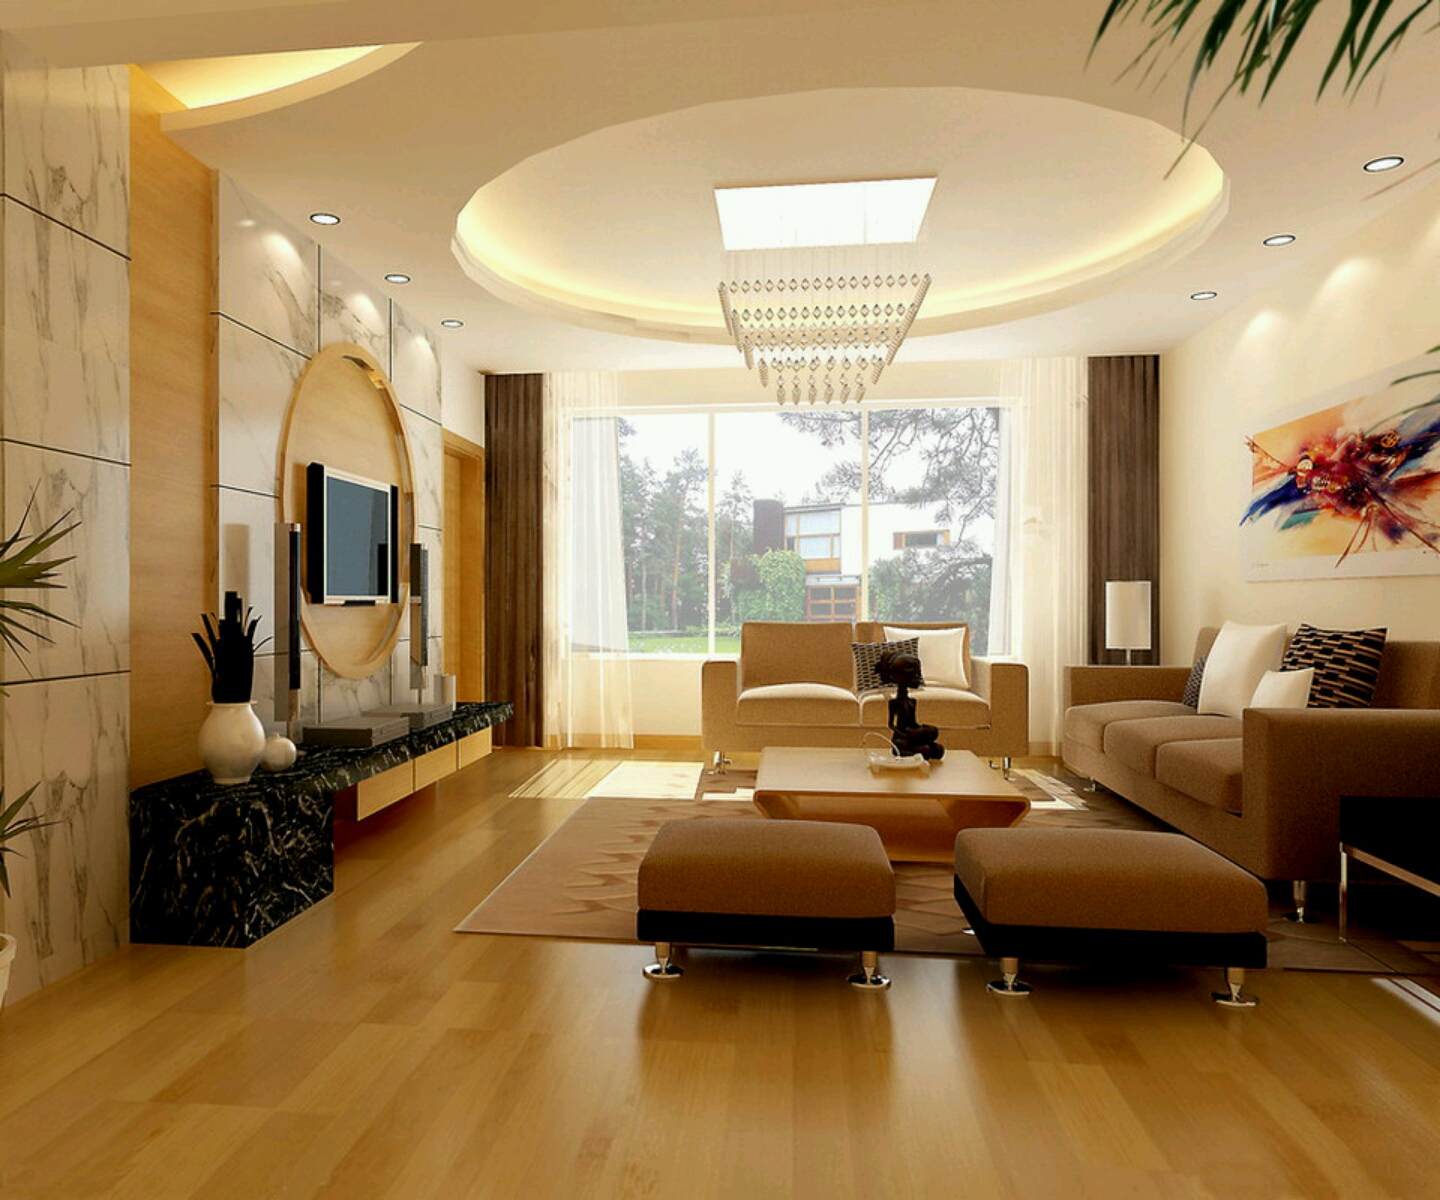 Modern interior decoration living rooms ceiling designs New home interior design